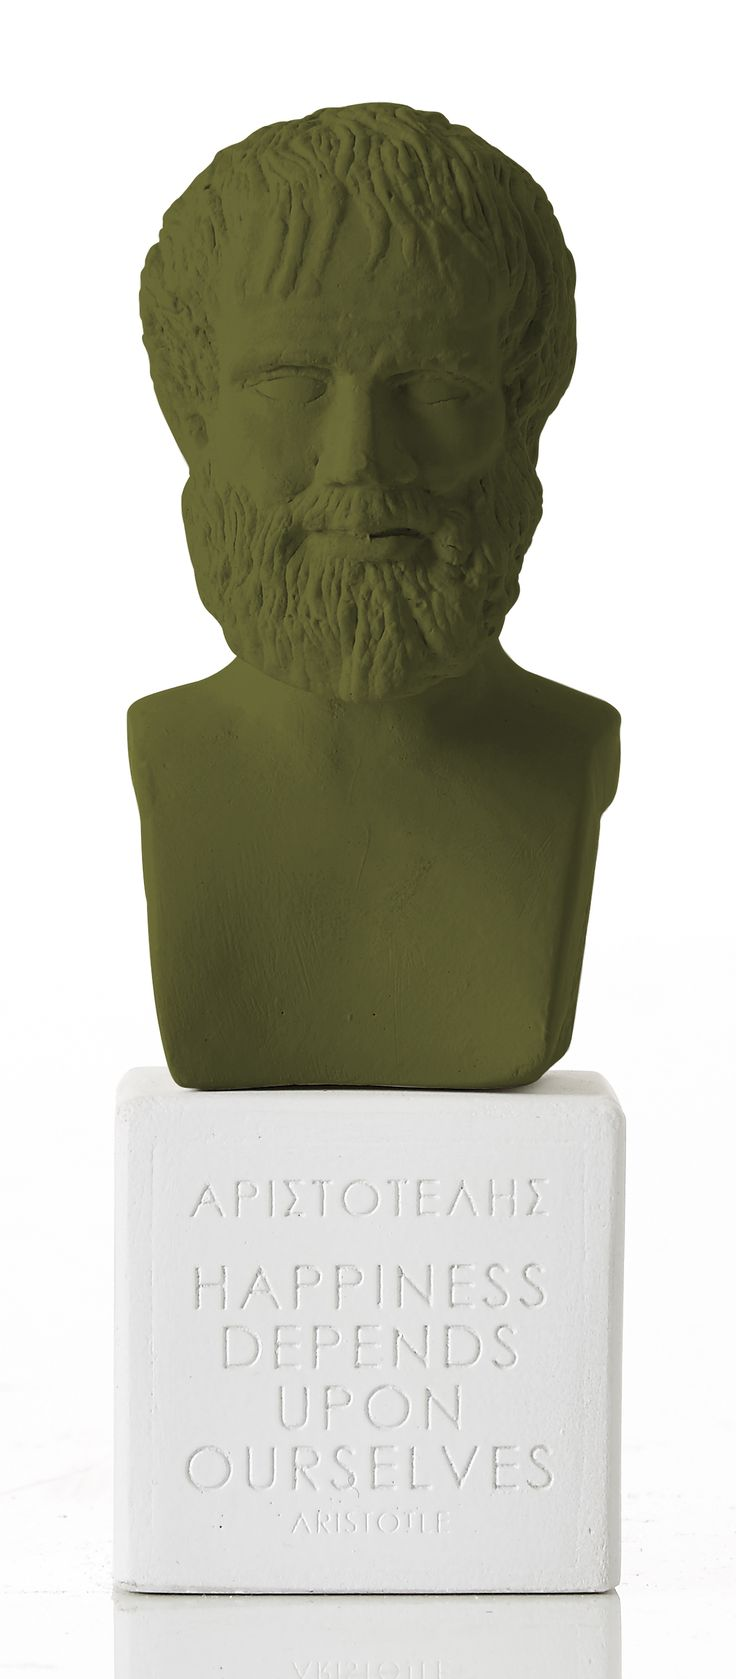 """Aristotle - """"Happiness depends upon ourselves"""" Weight: 300 gr Dimension: 14,5x5,5x5,5cm Material: ceramine Color: olive green"""